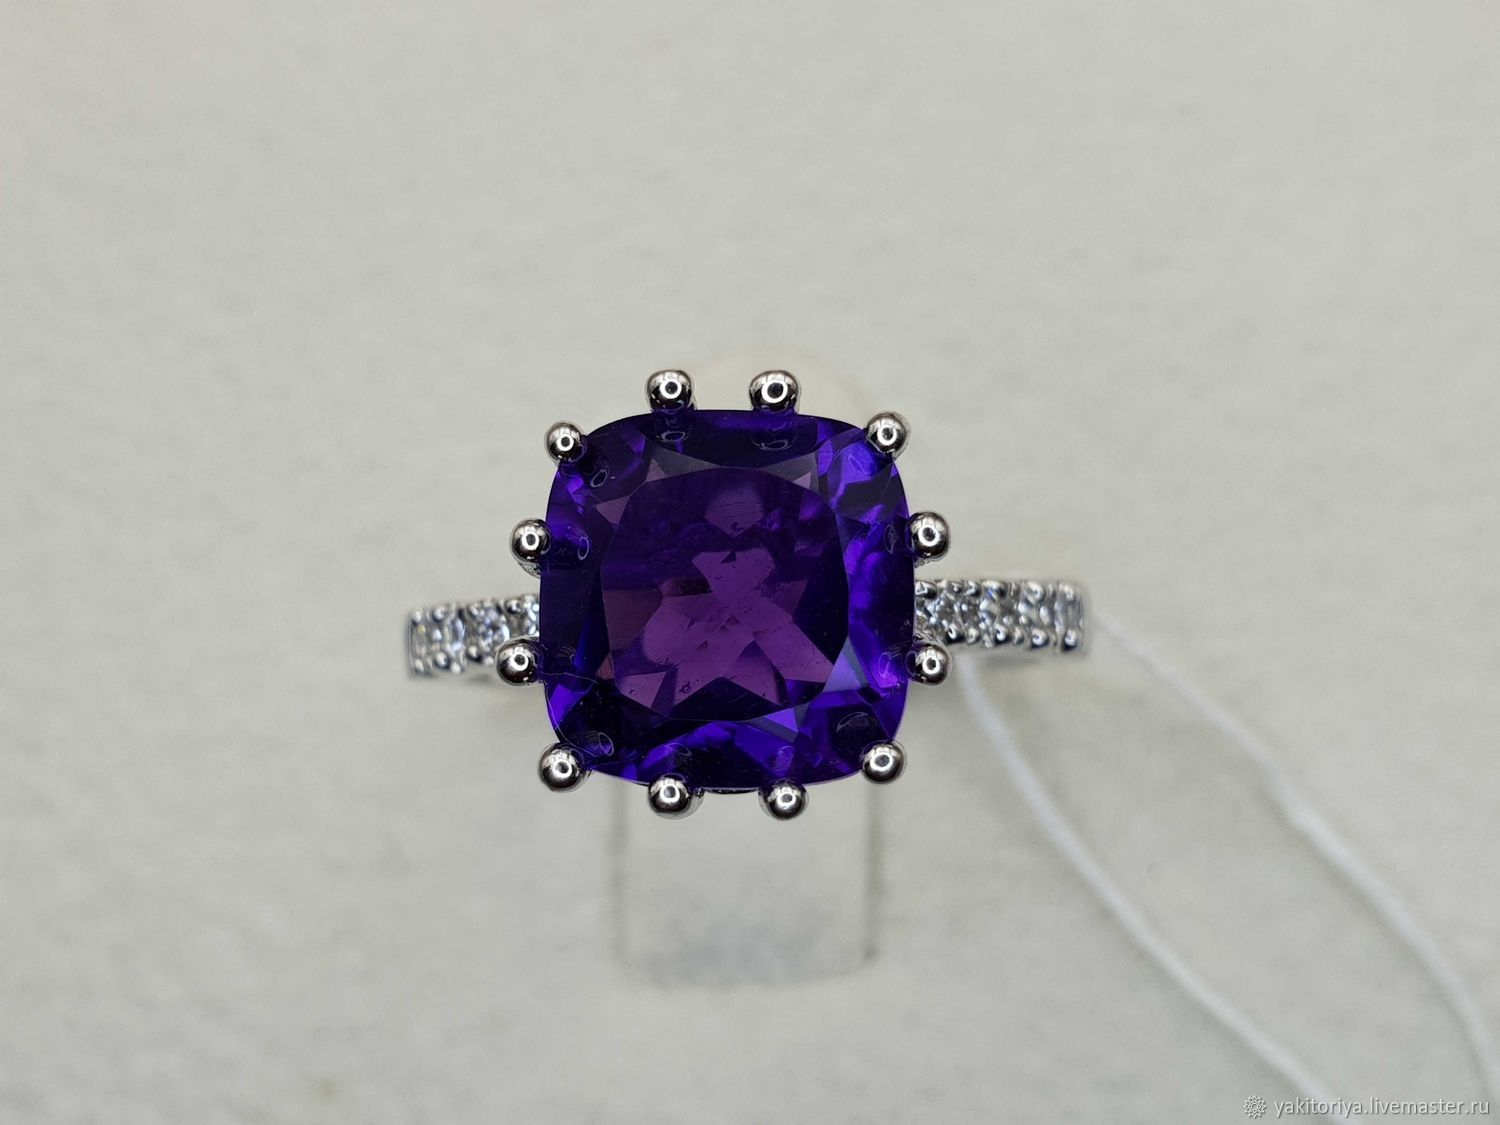 Silver ring with amethyst and cubic zirconia, Rings, Moscow,  Фото №1